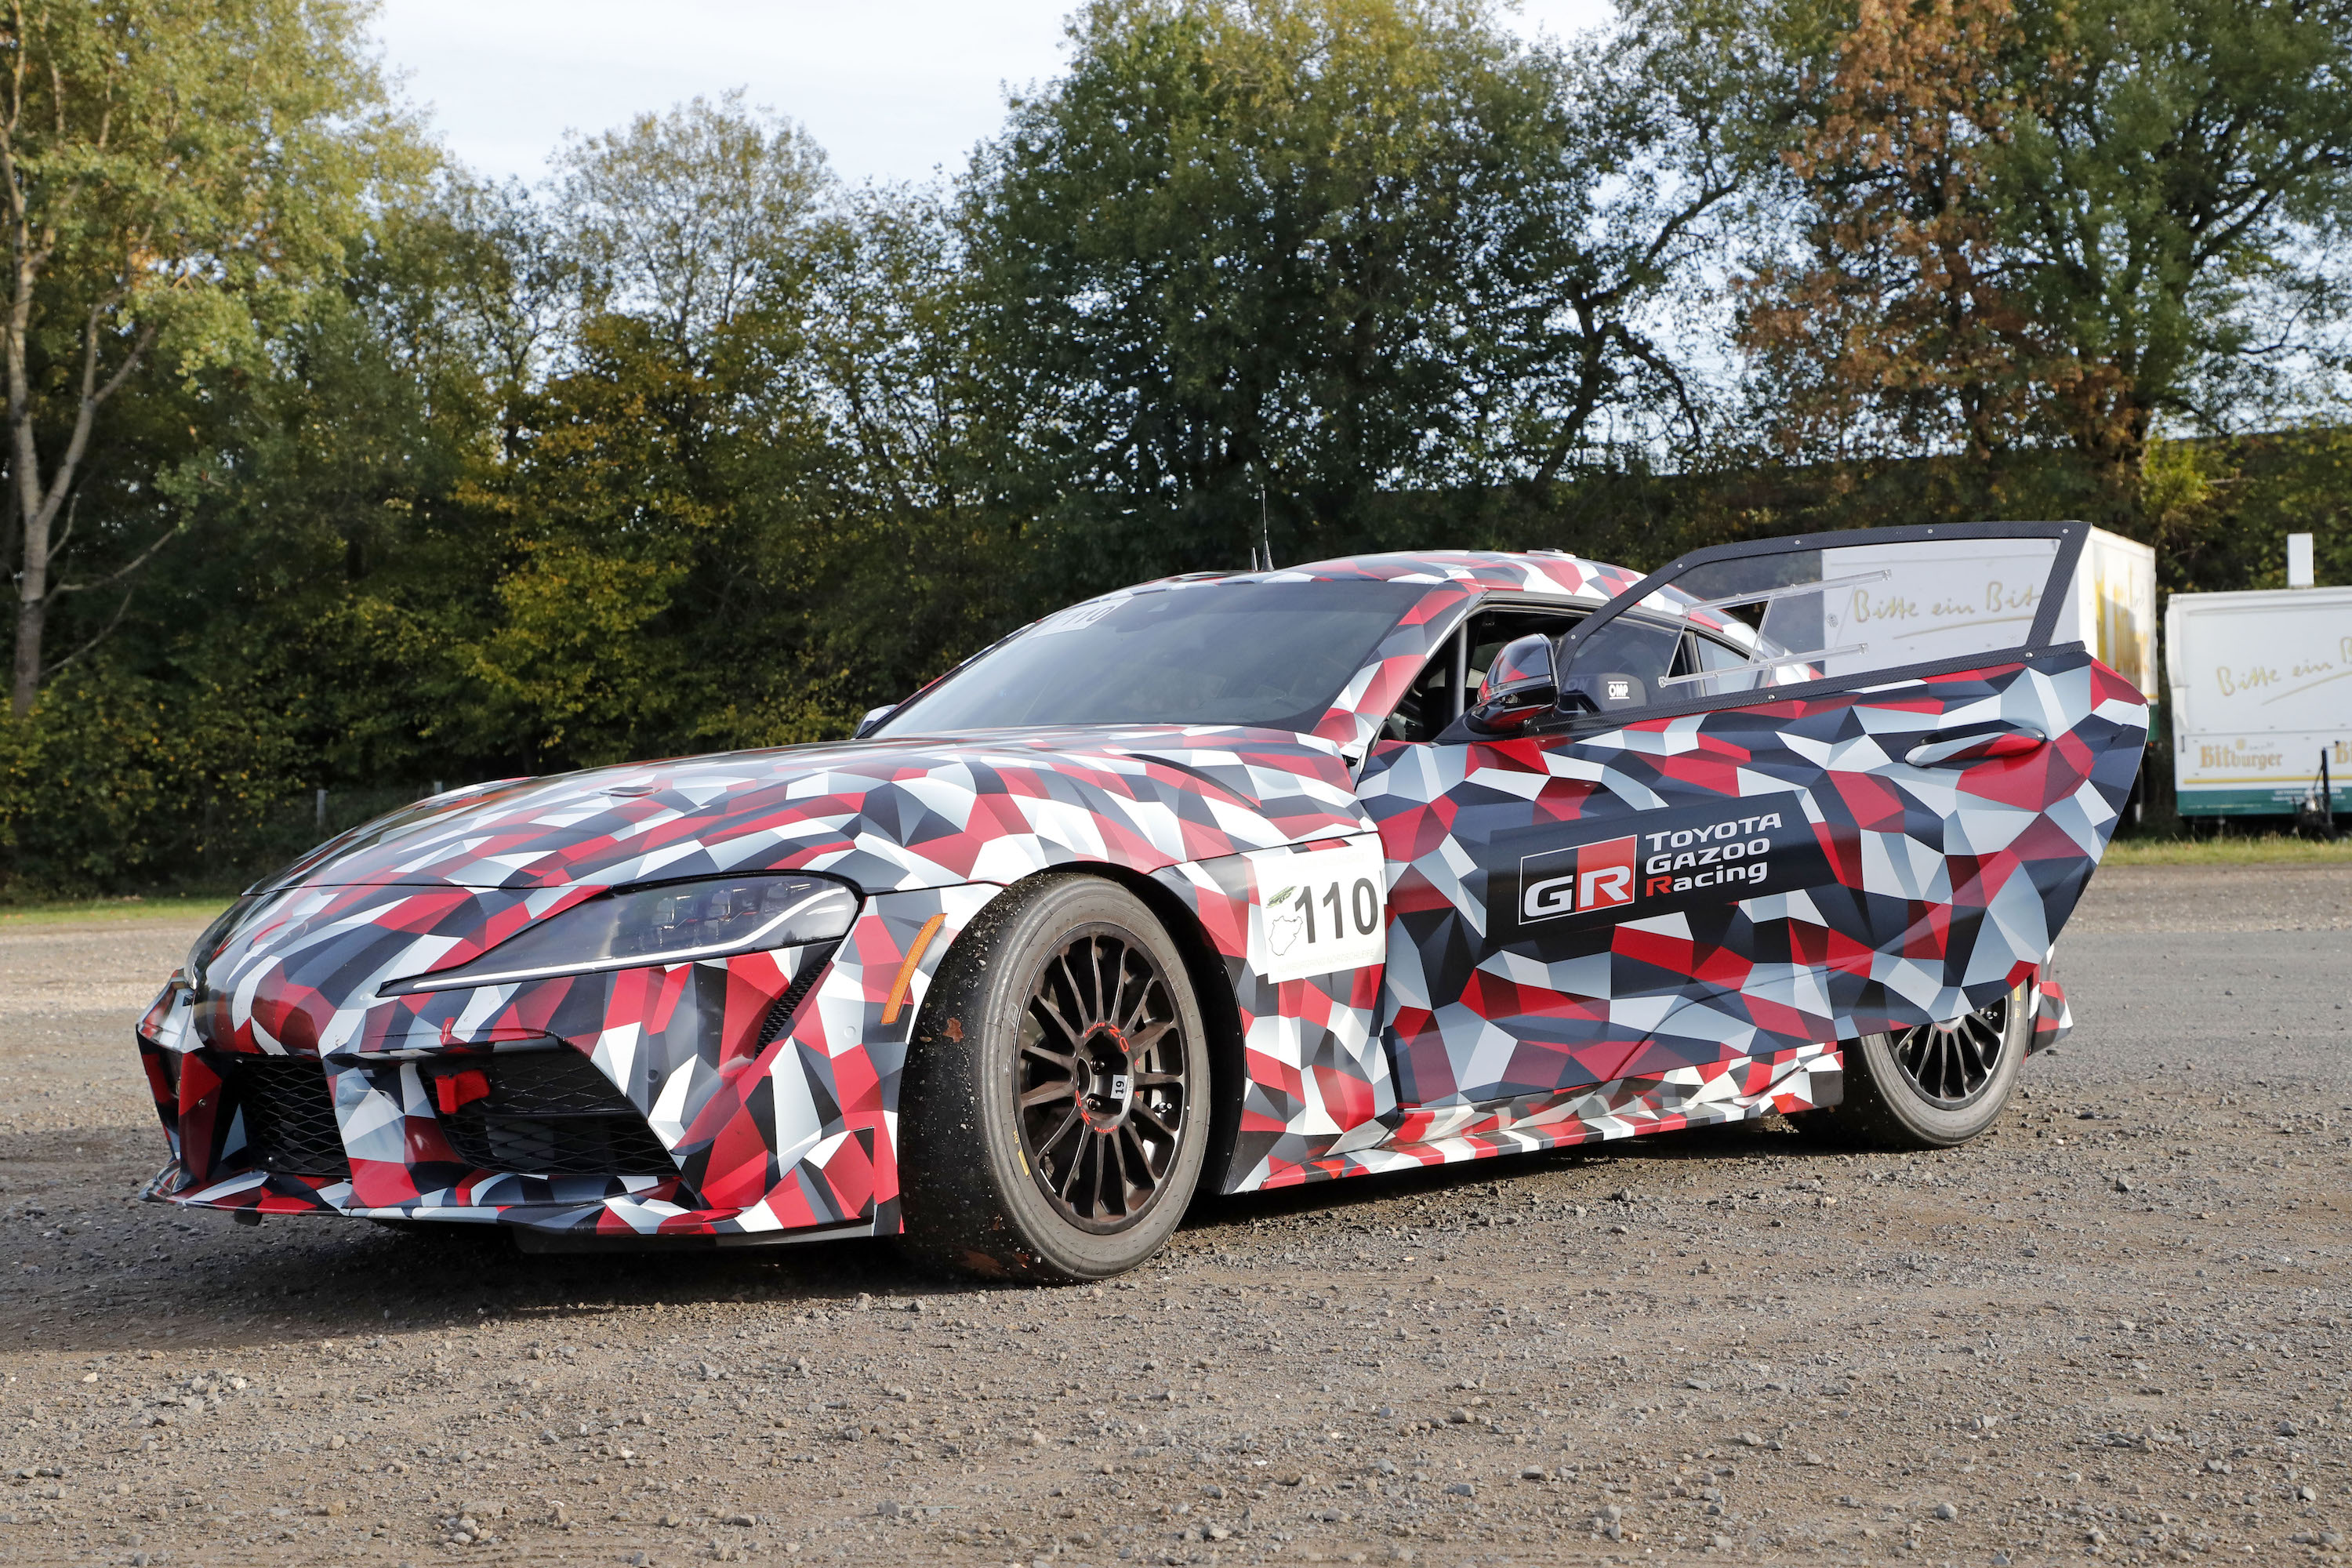 2020 Toyota Supra A90 Images Leaked - Is This It? | Top Speed